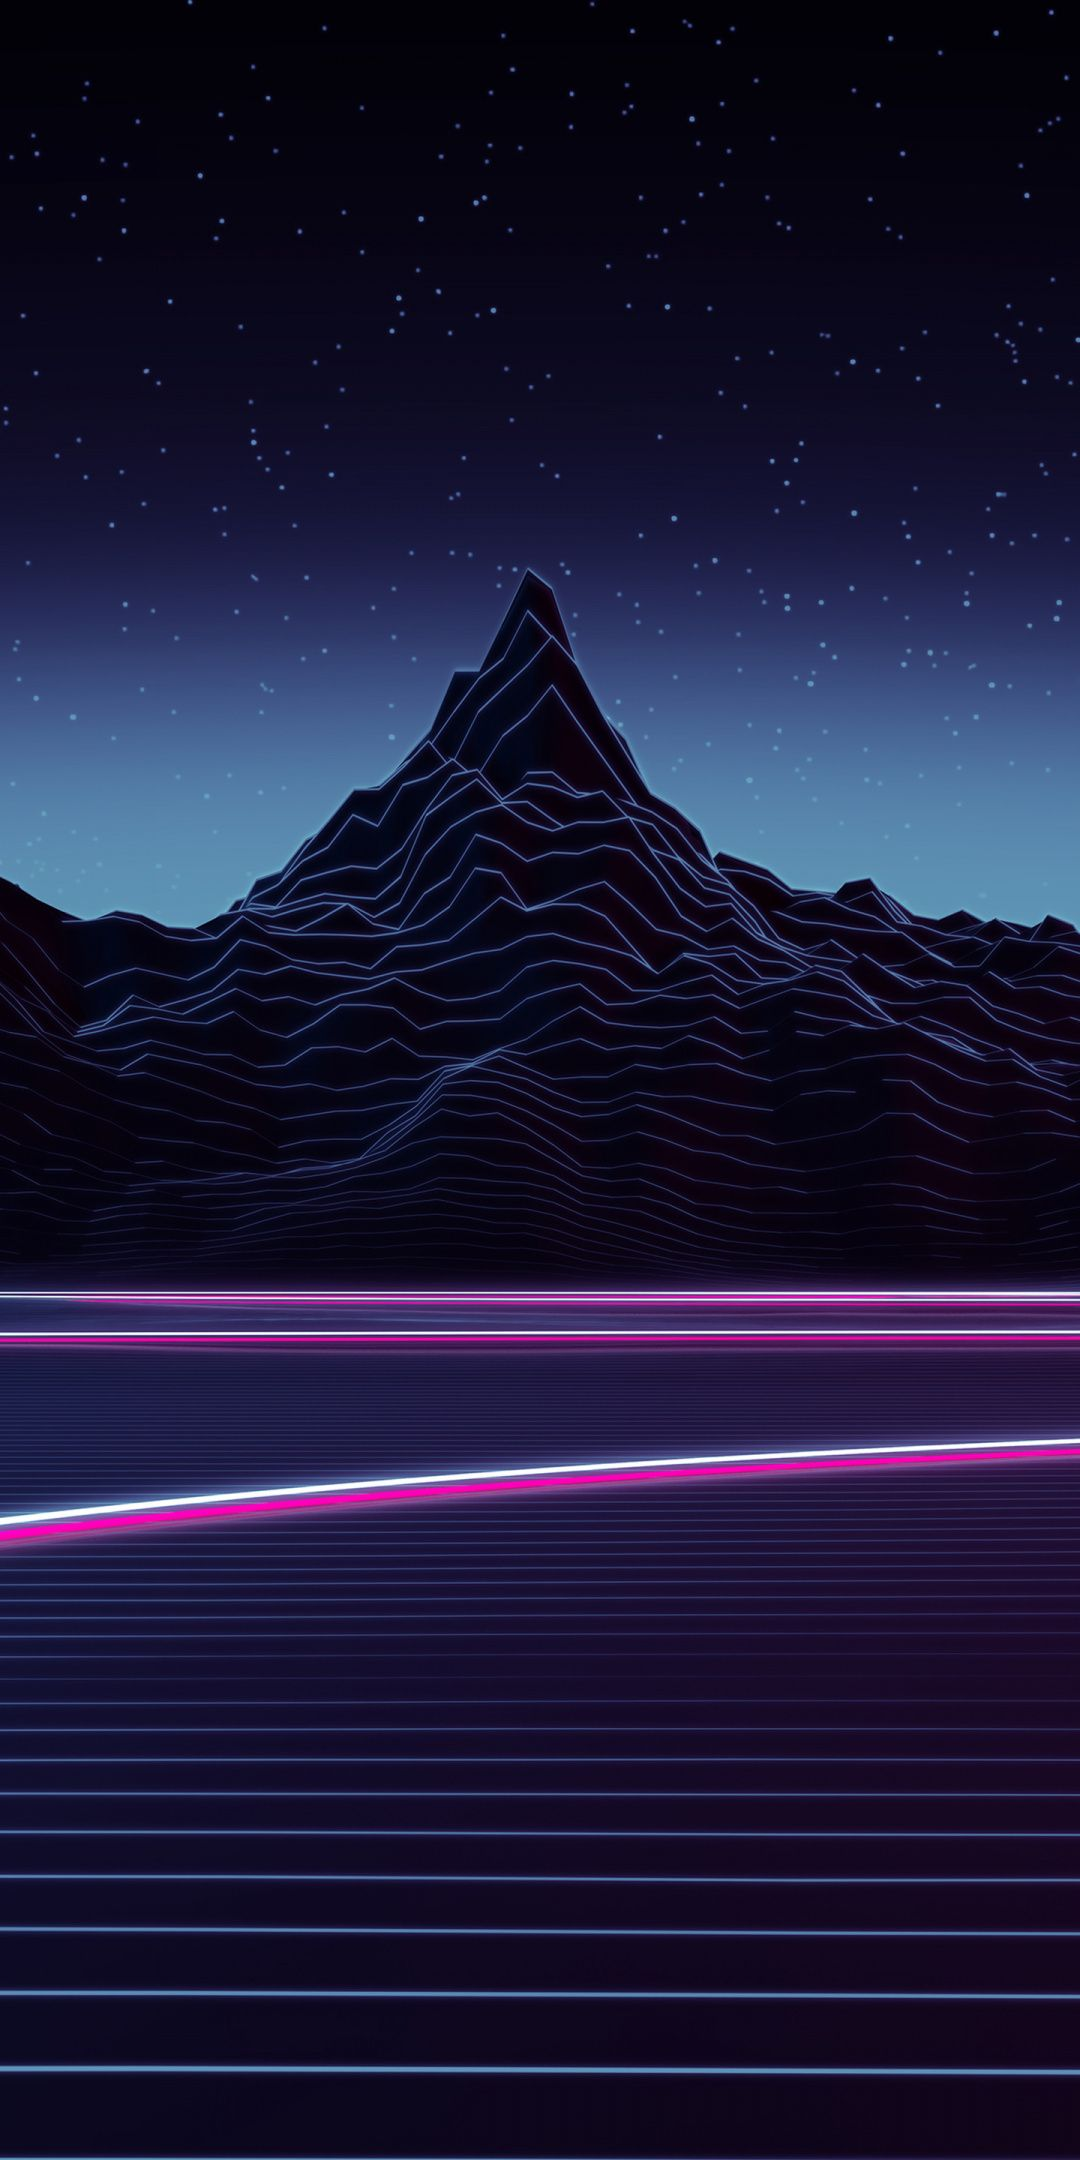 Neon Highway Mountains Landscape 1080x2160 Wallpaper With